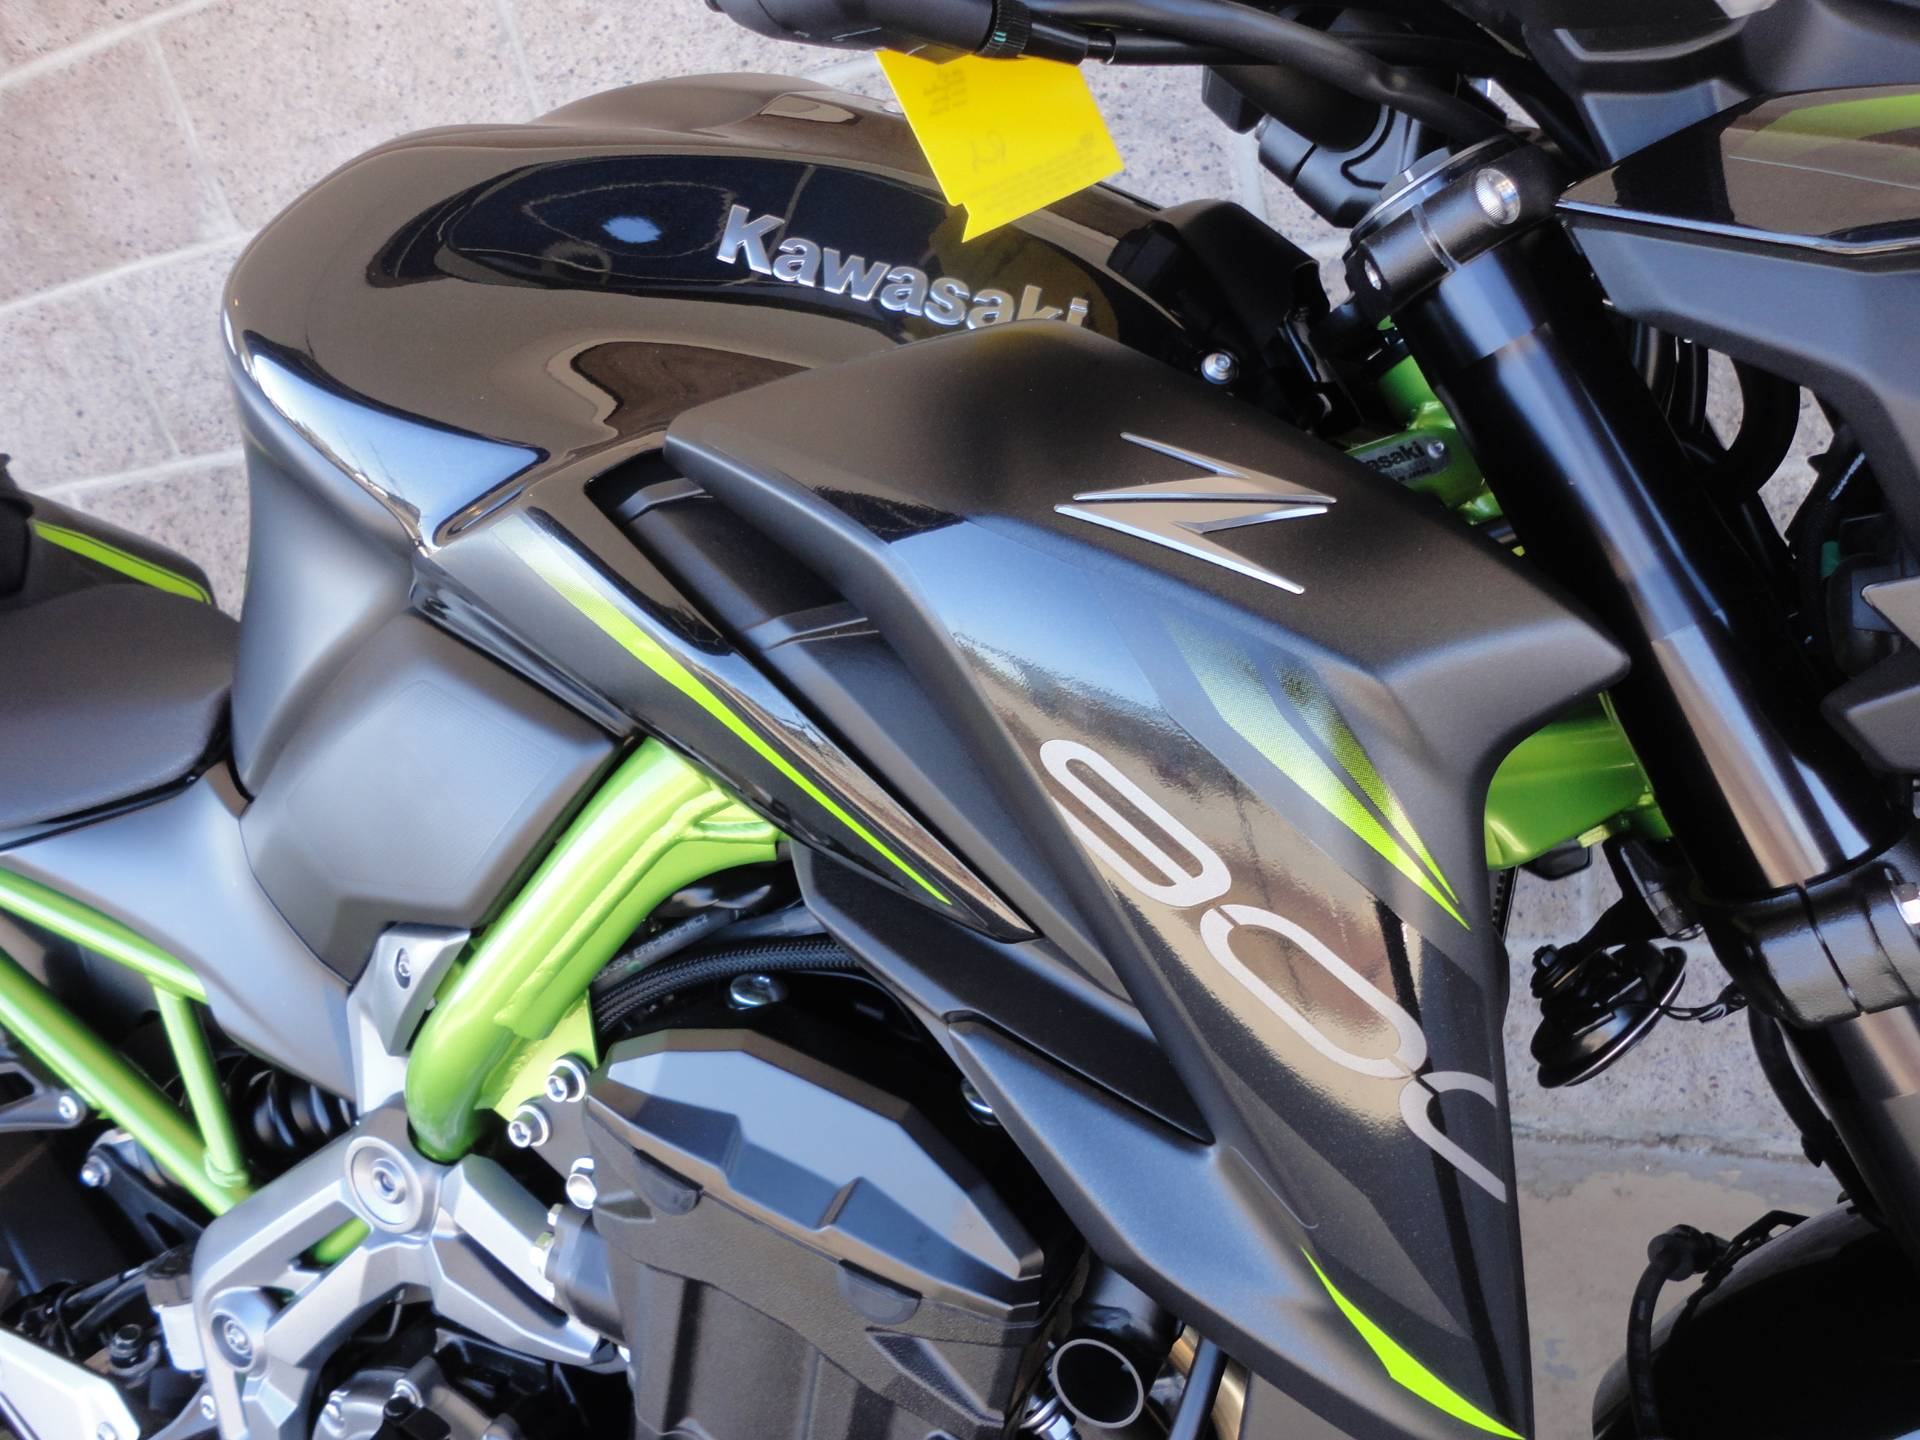 2019 Kawasaki Z900 ABS in Denver, Colorado